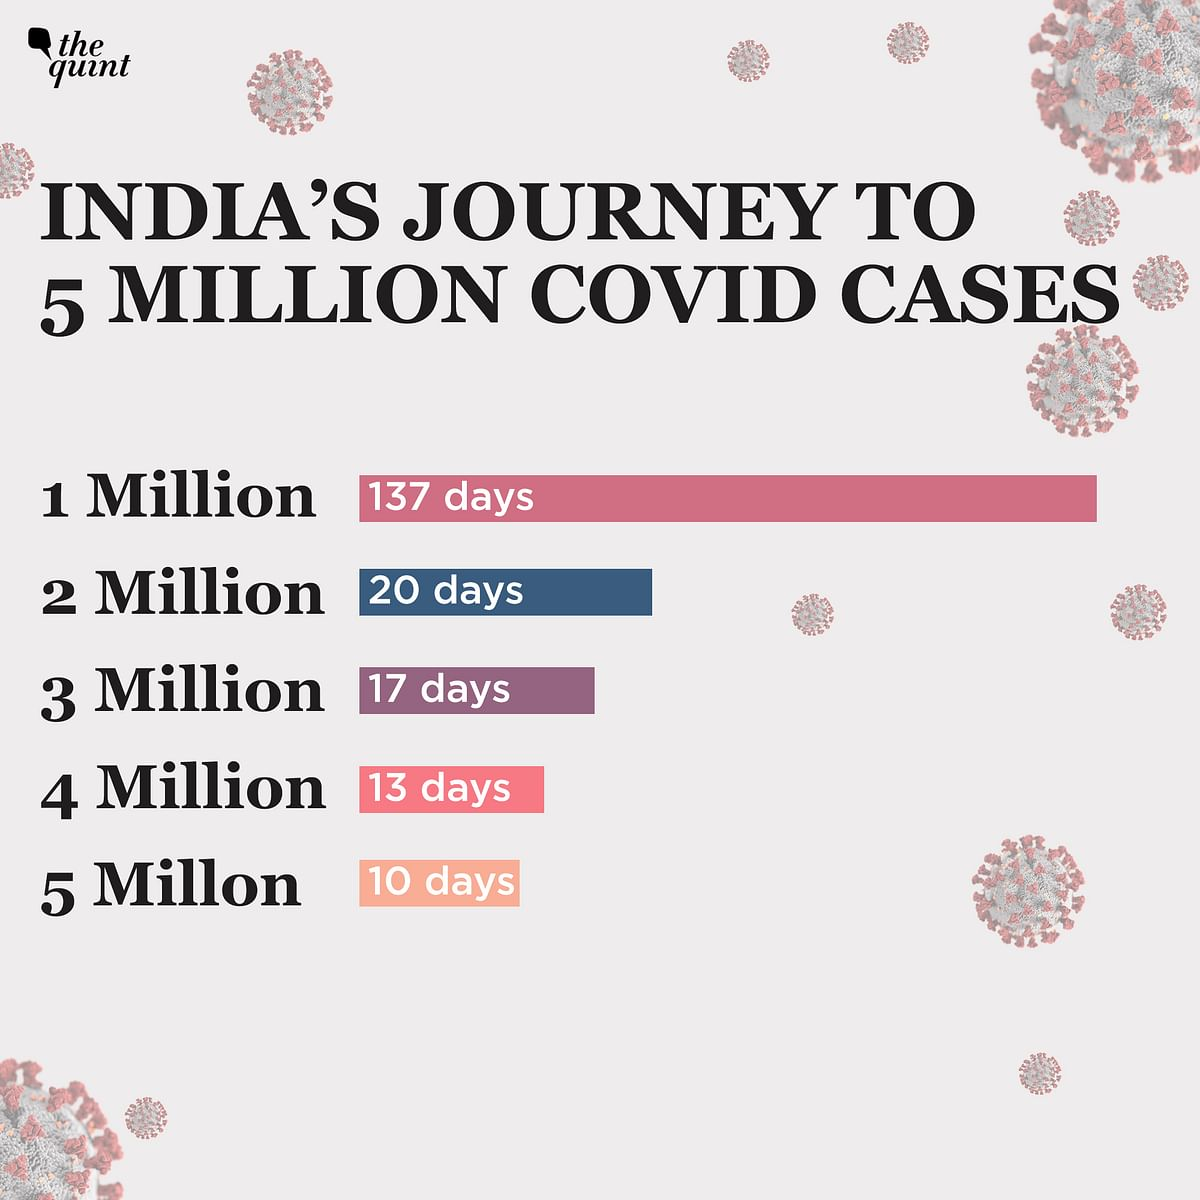 India Crosses 1 Lakh COVID Deaths; Here Is How We Got There